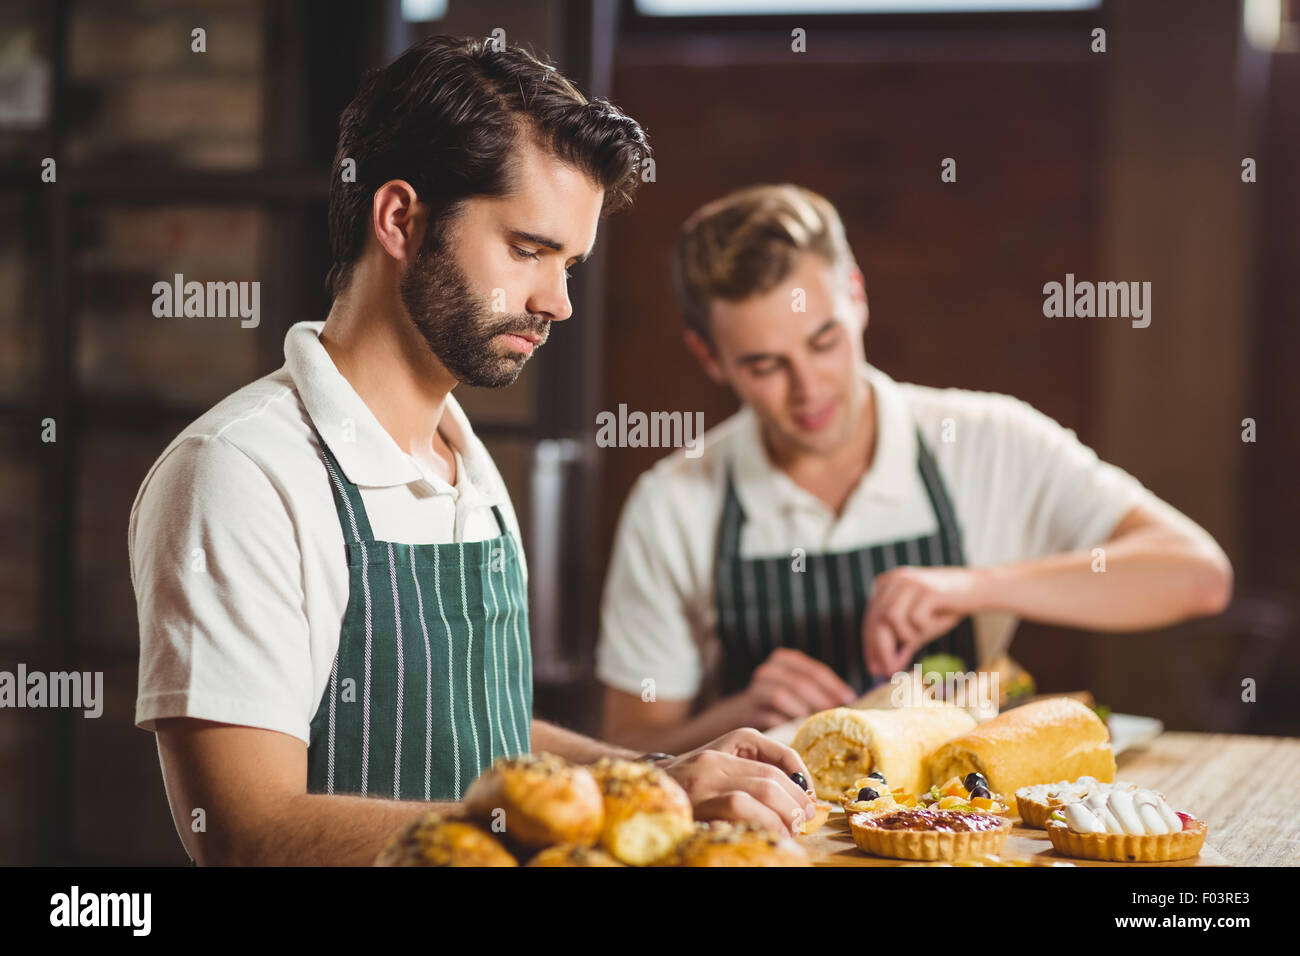 Concentrated waiters tidying up the pastries - Stock Image